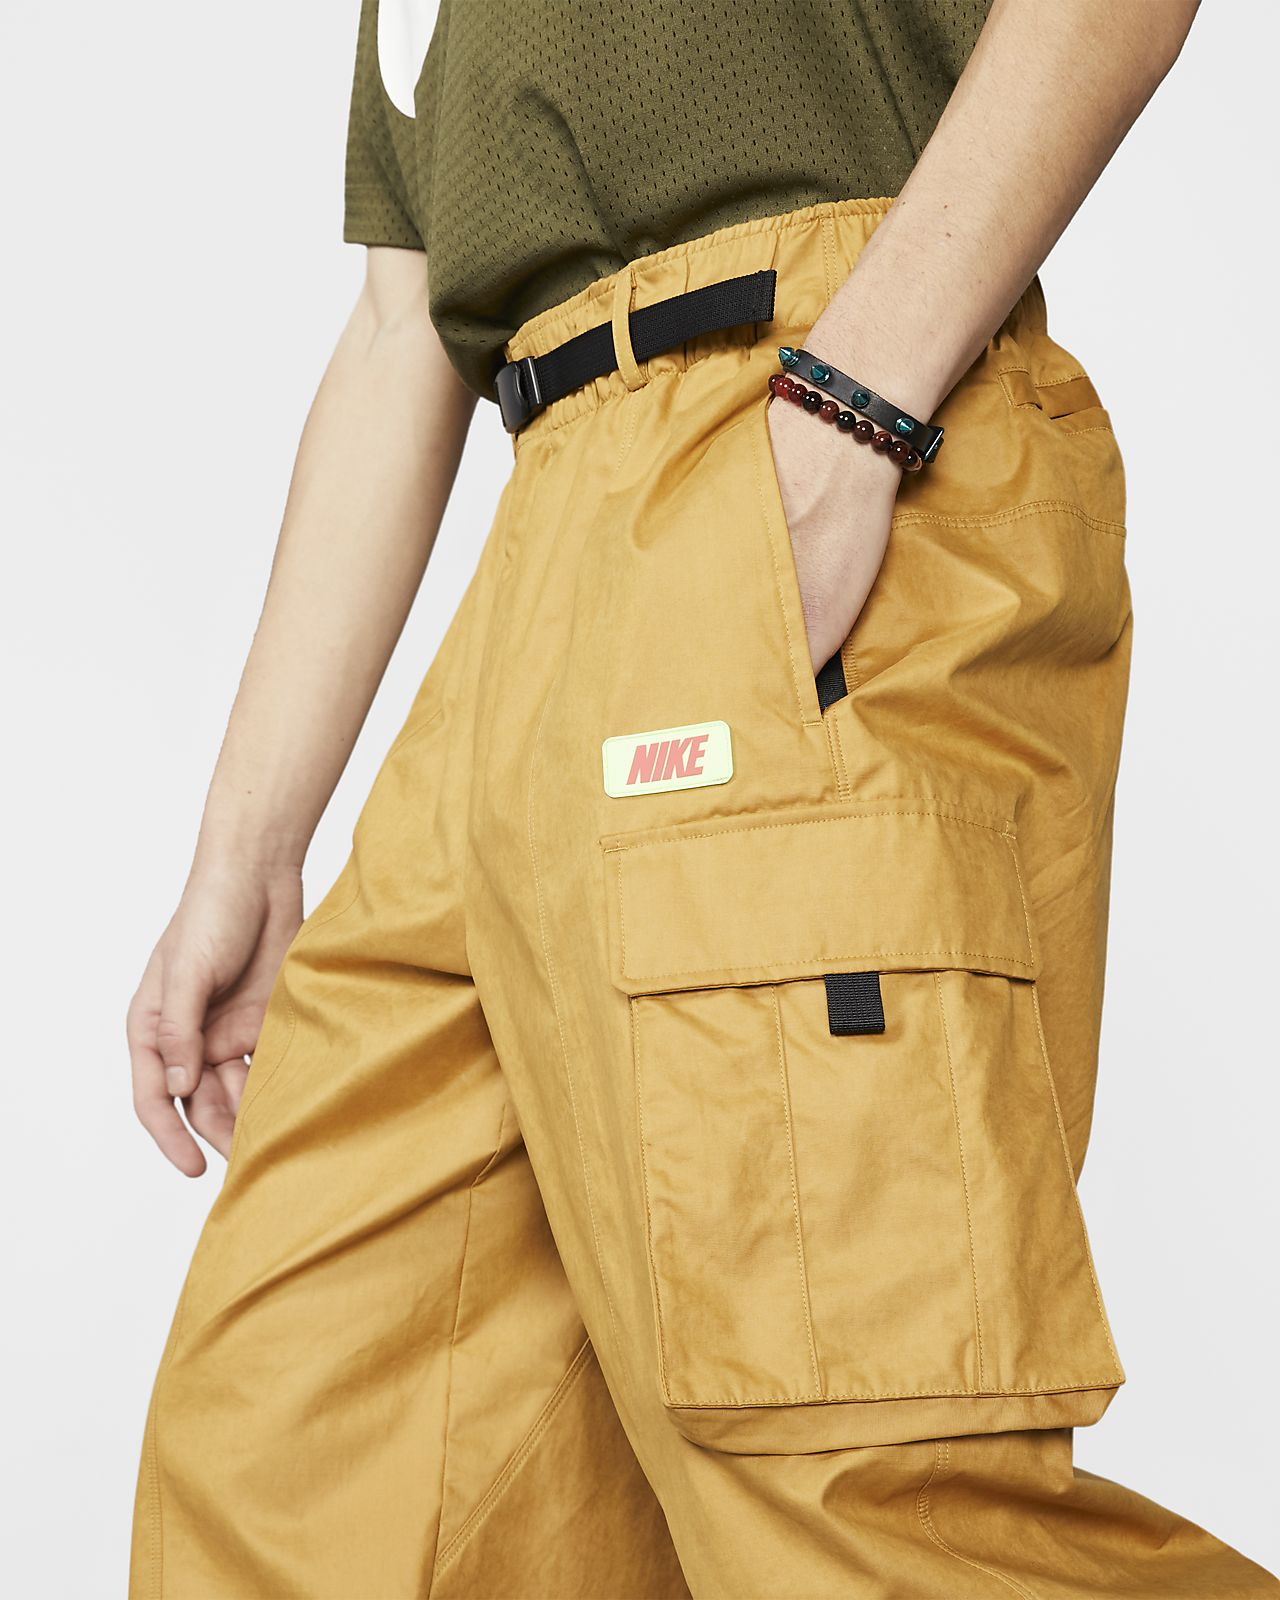 9883201a Low Resolution Nike Quest Cargo Pants Nike Quest Cargo Pants